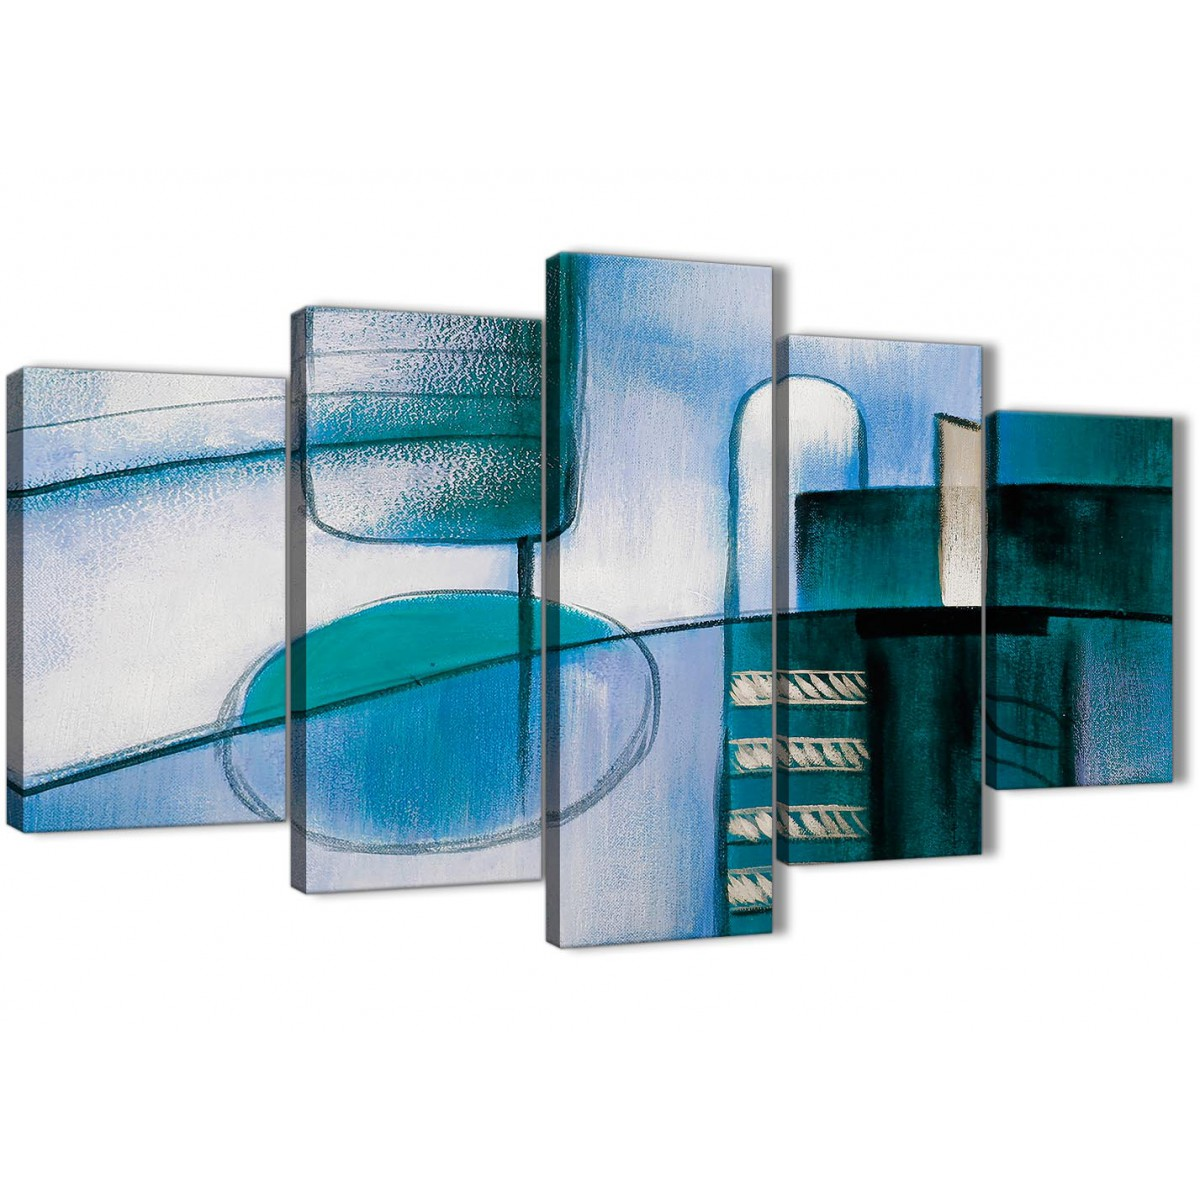 Home Office Sets Painted Office 5 Piece: 5 Piece Teal Cream Painting Abstract Living Room Canvas